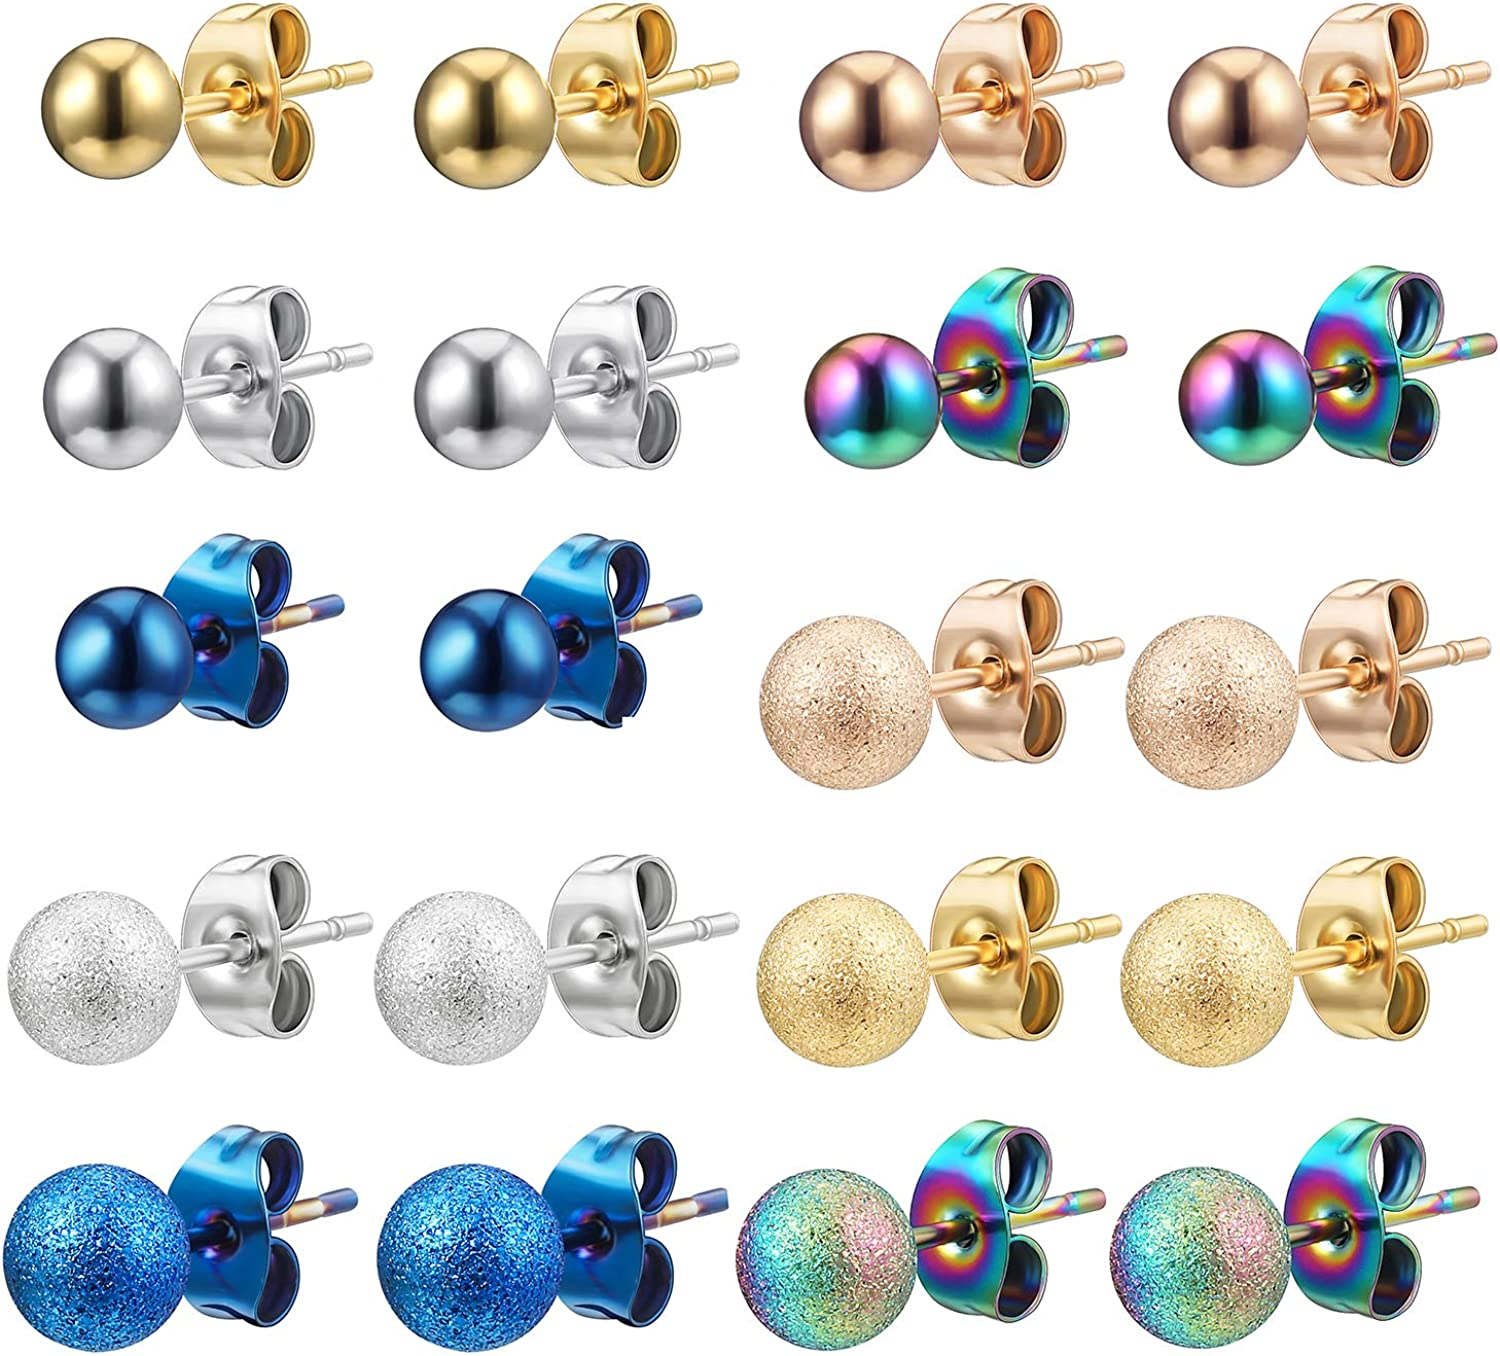 Ball Stud Earrings for Women Men Girls Statement Hypoallergenic Surgical Steel Cartilage Tragus Earrings 10 Pairs